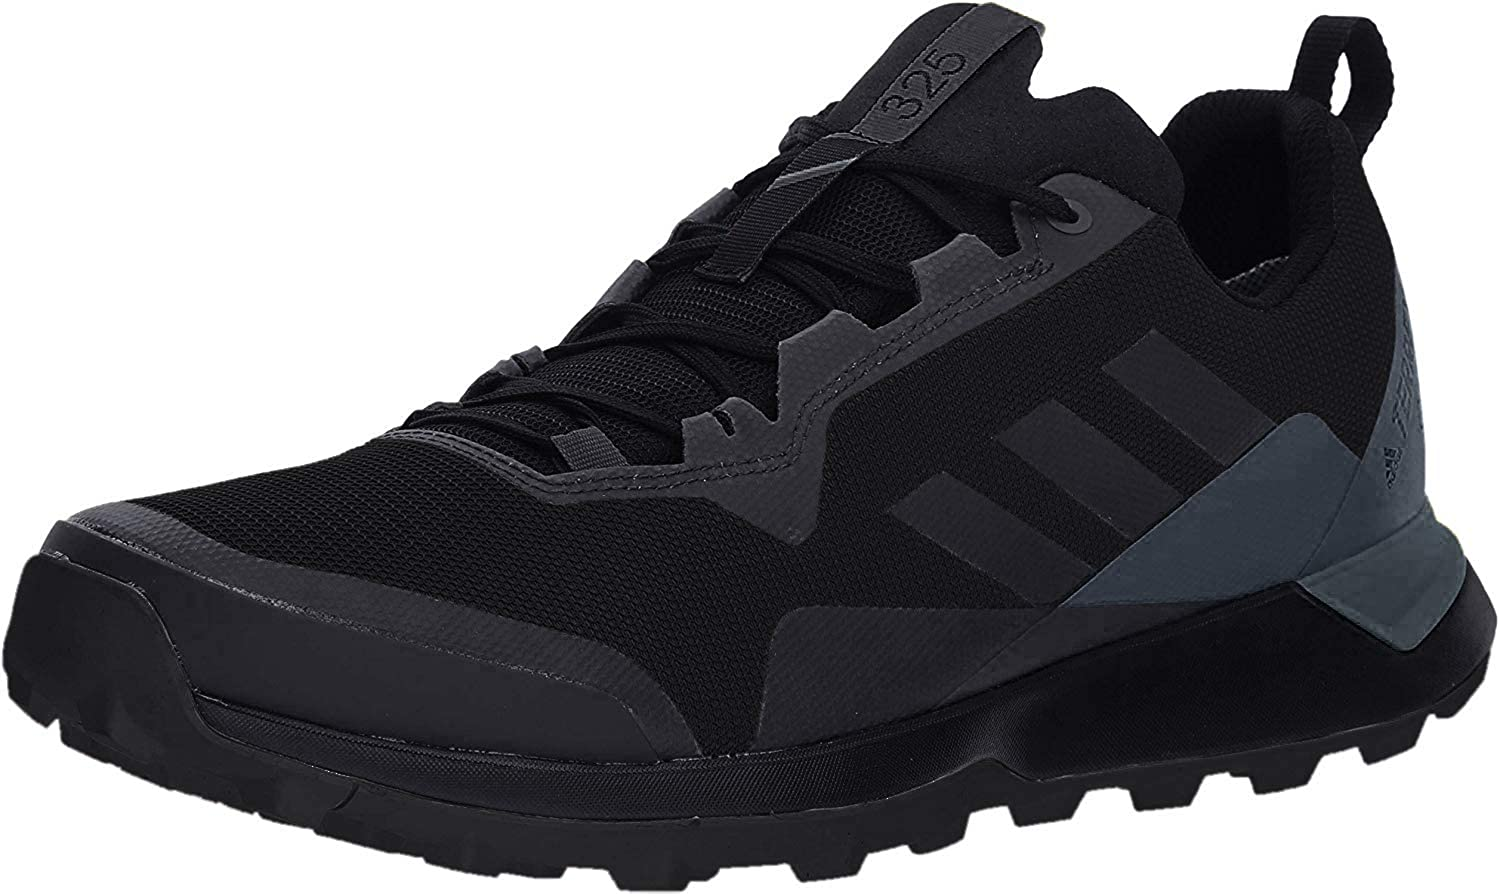 adidas outdoor Men s Terrex CMTK GTX